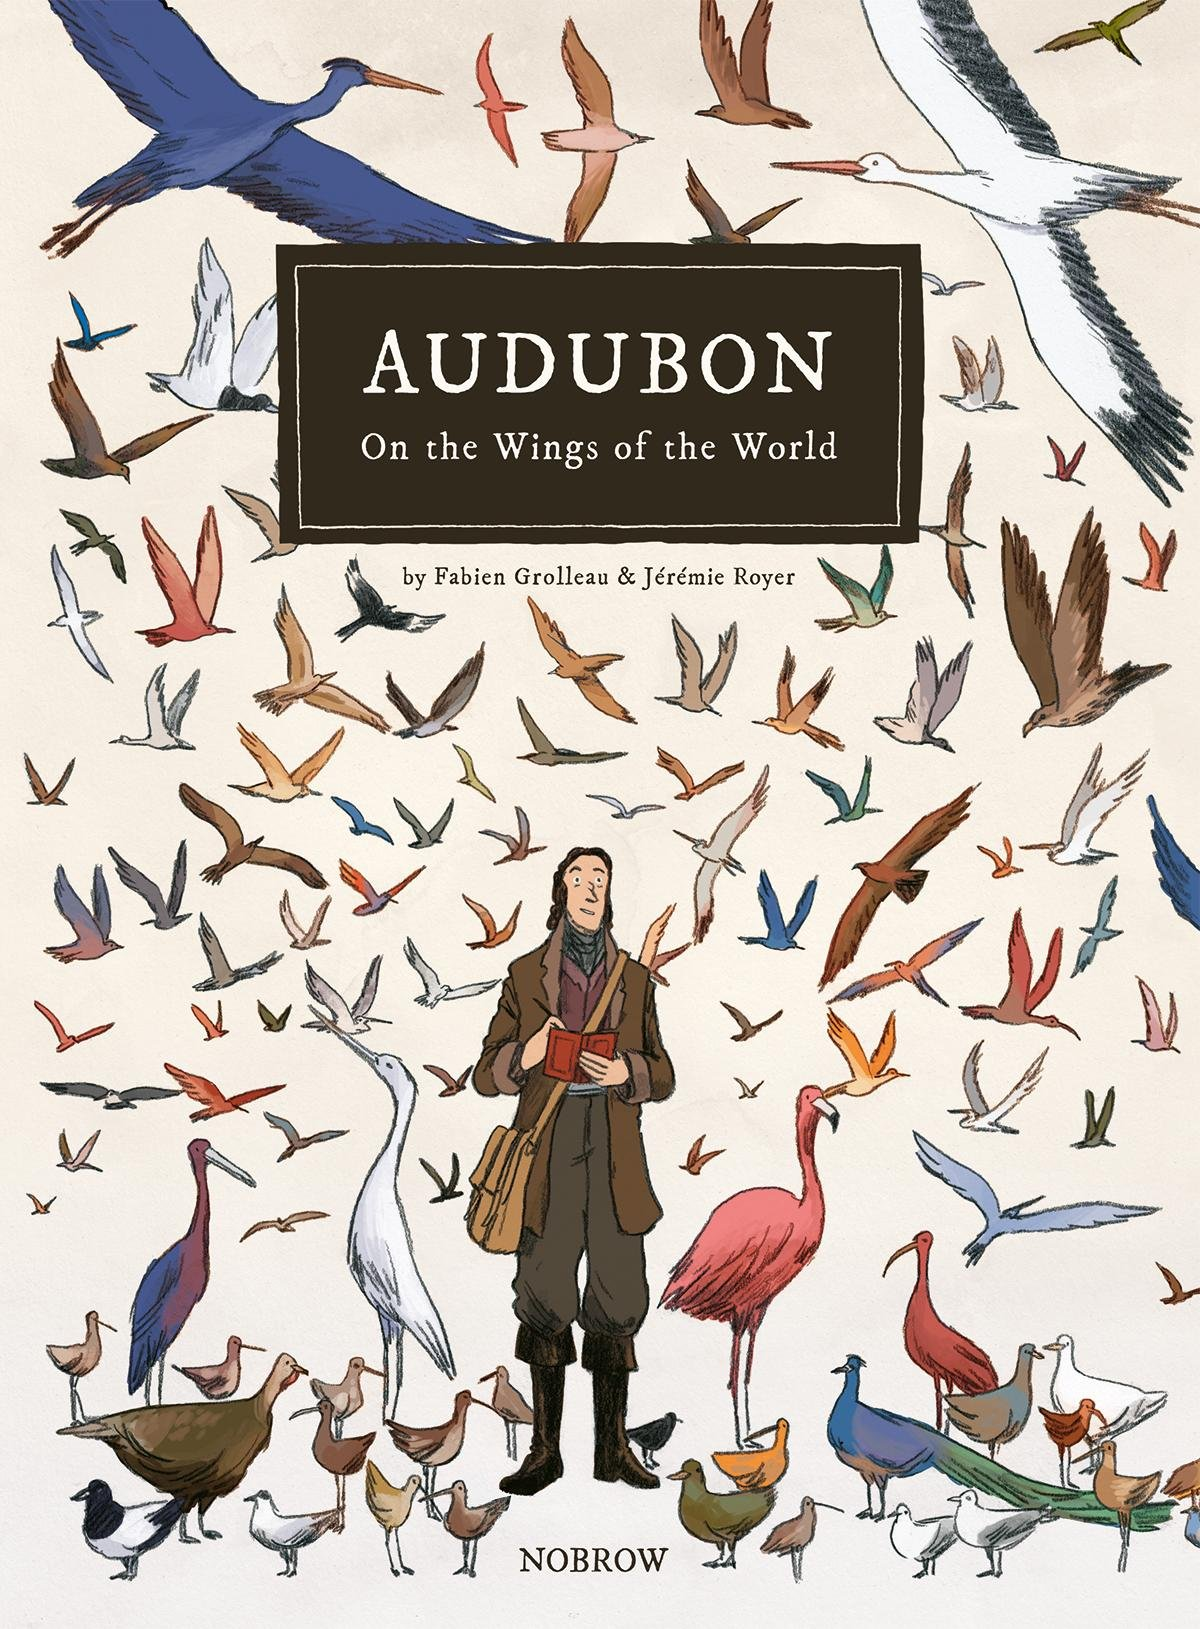 Audubon: On the Wings of the World by Fabien Grolleau and Jeremie Royer